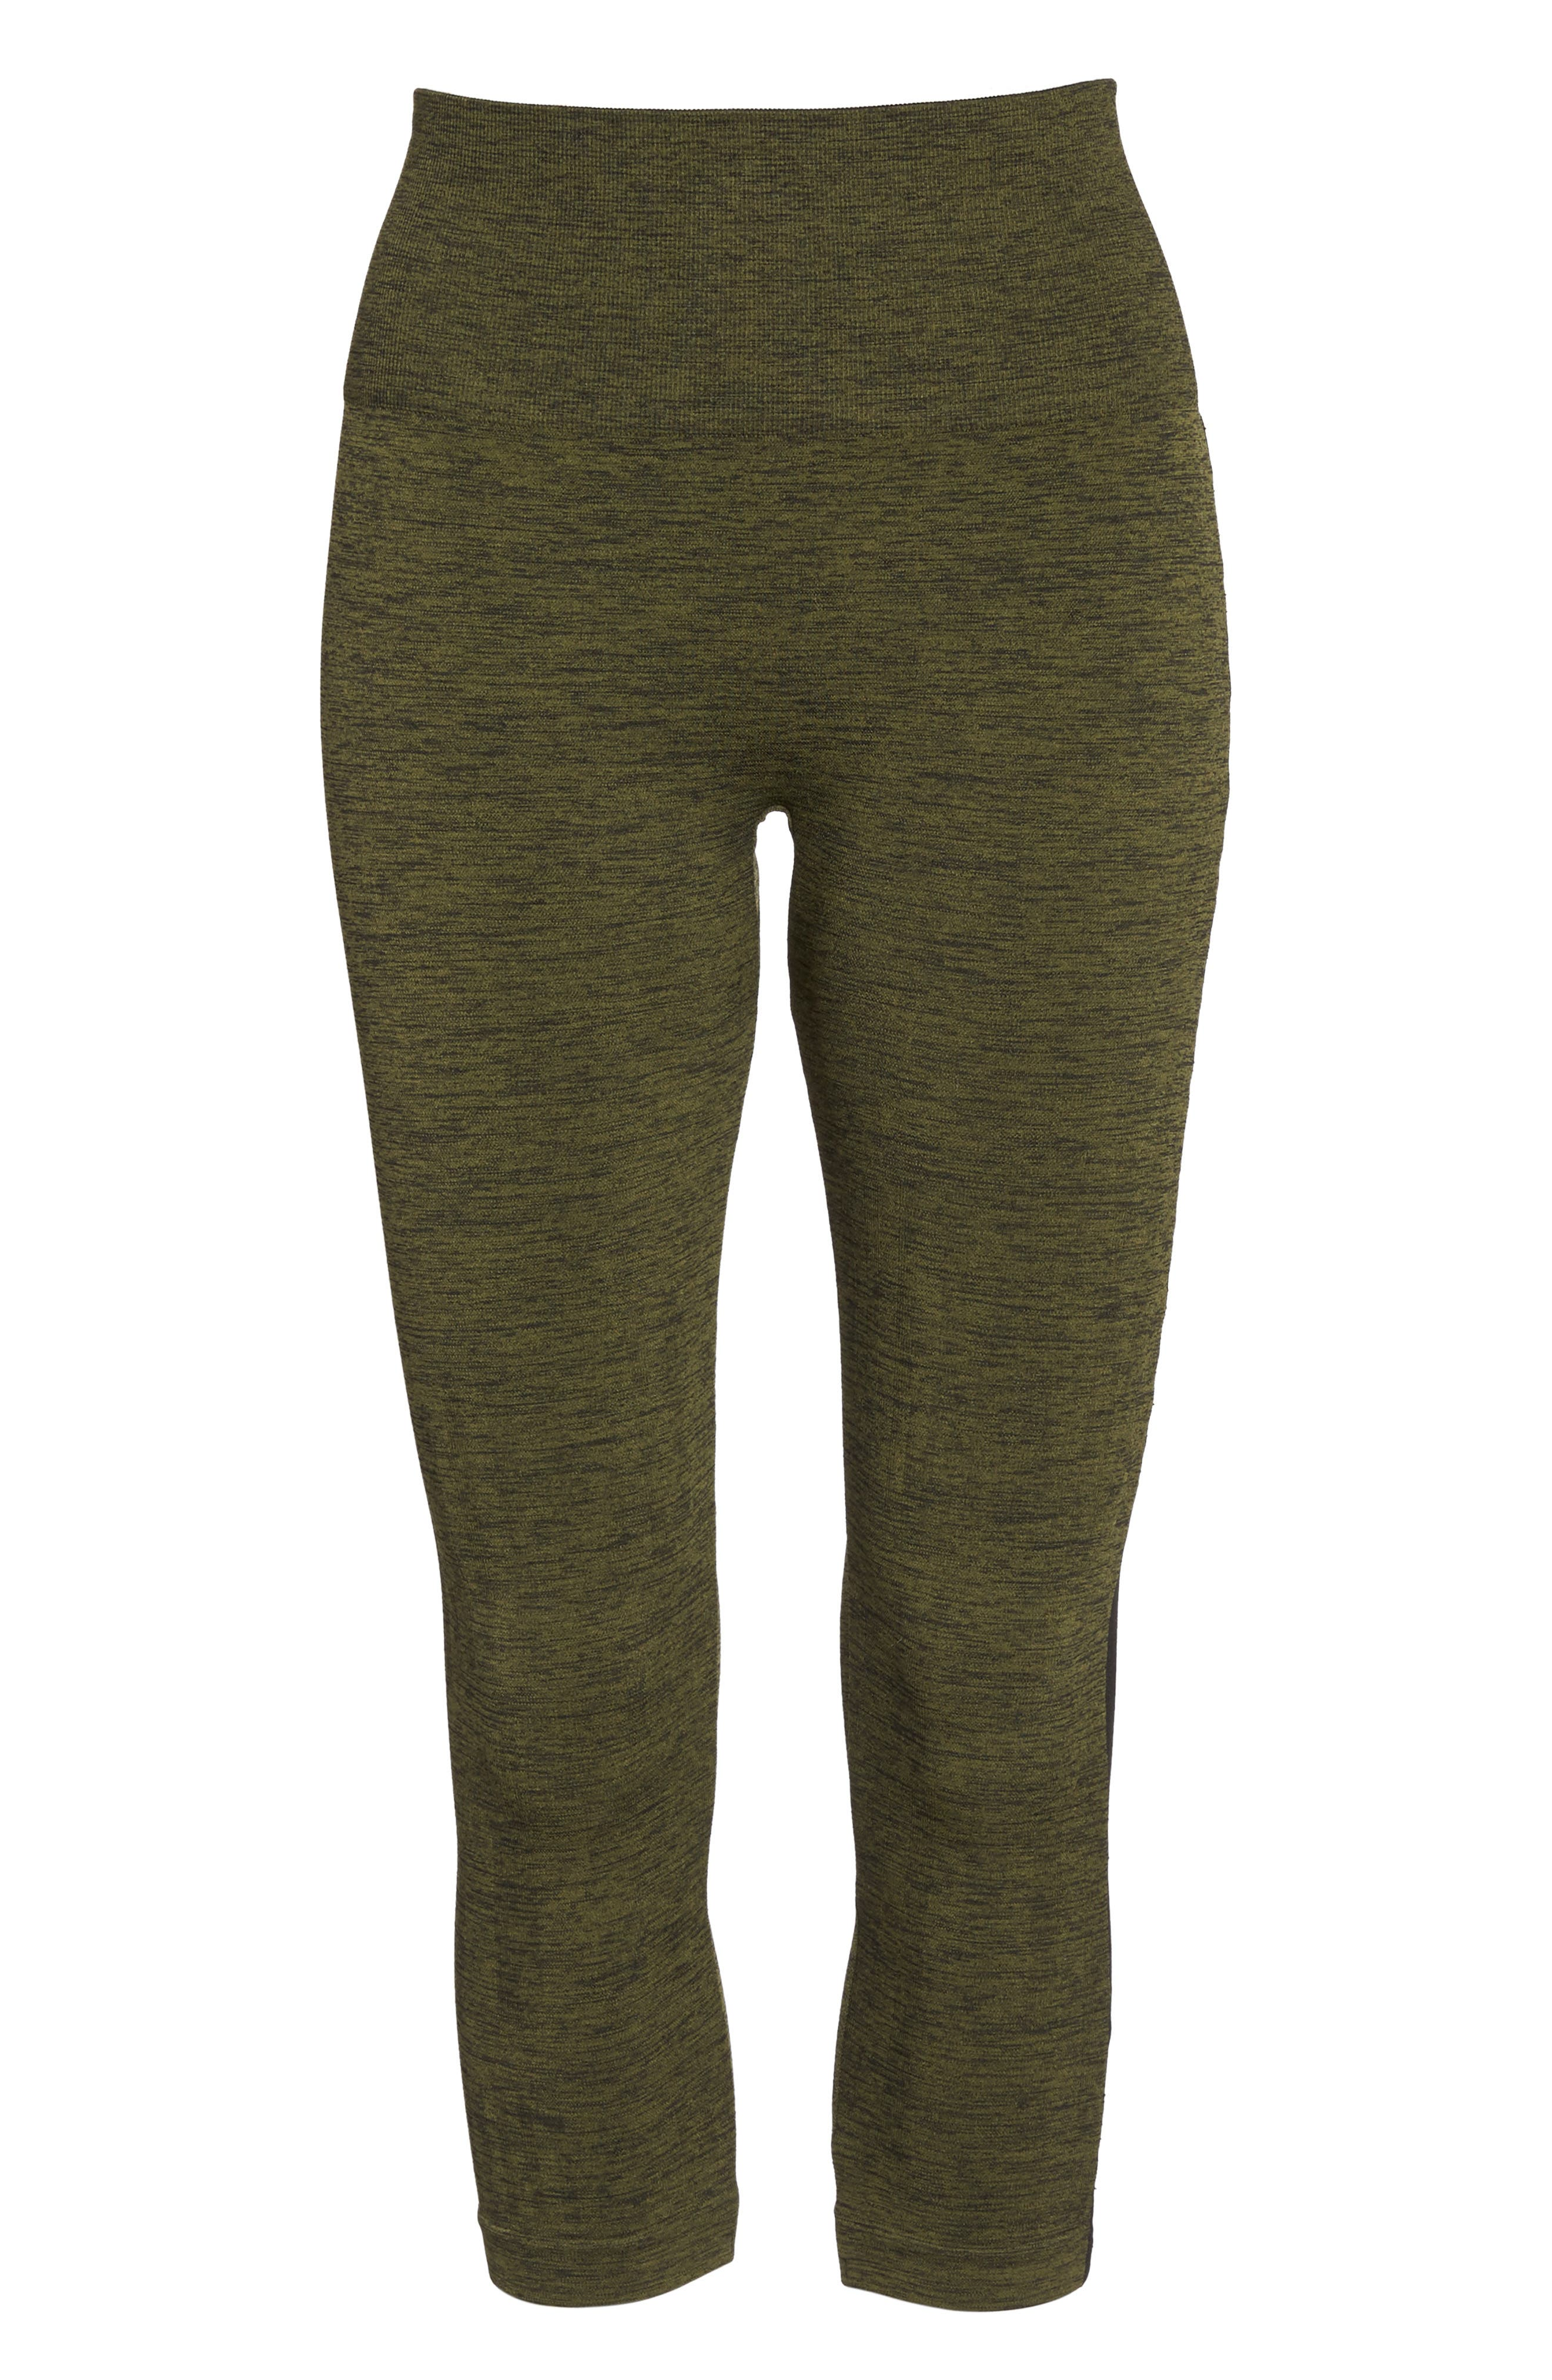 Stamina Capri Leggings,                             Alternate thumbnail 7, color,                             300